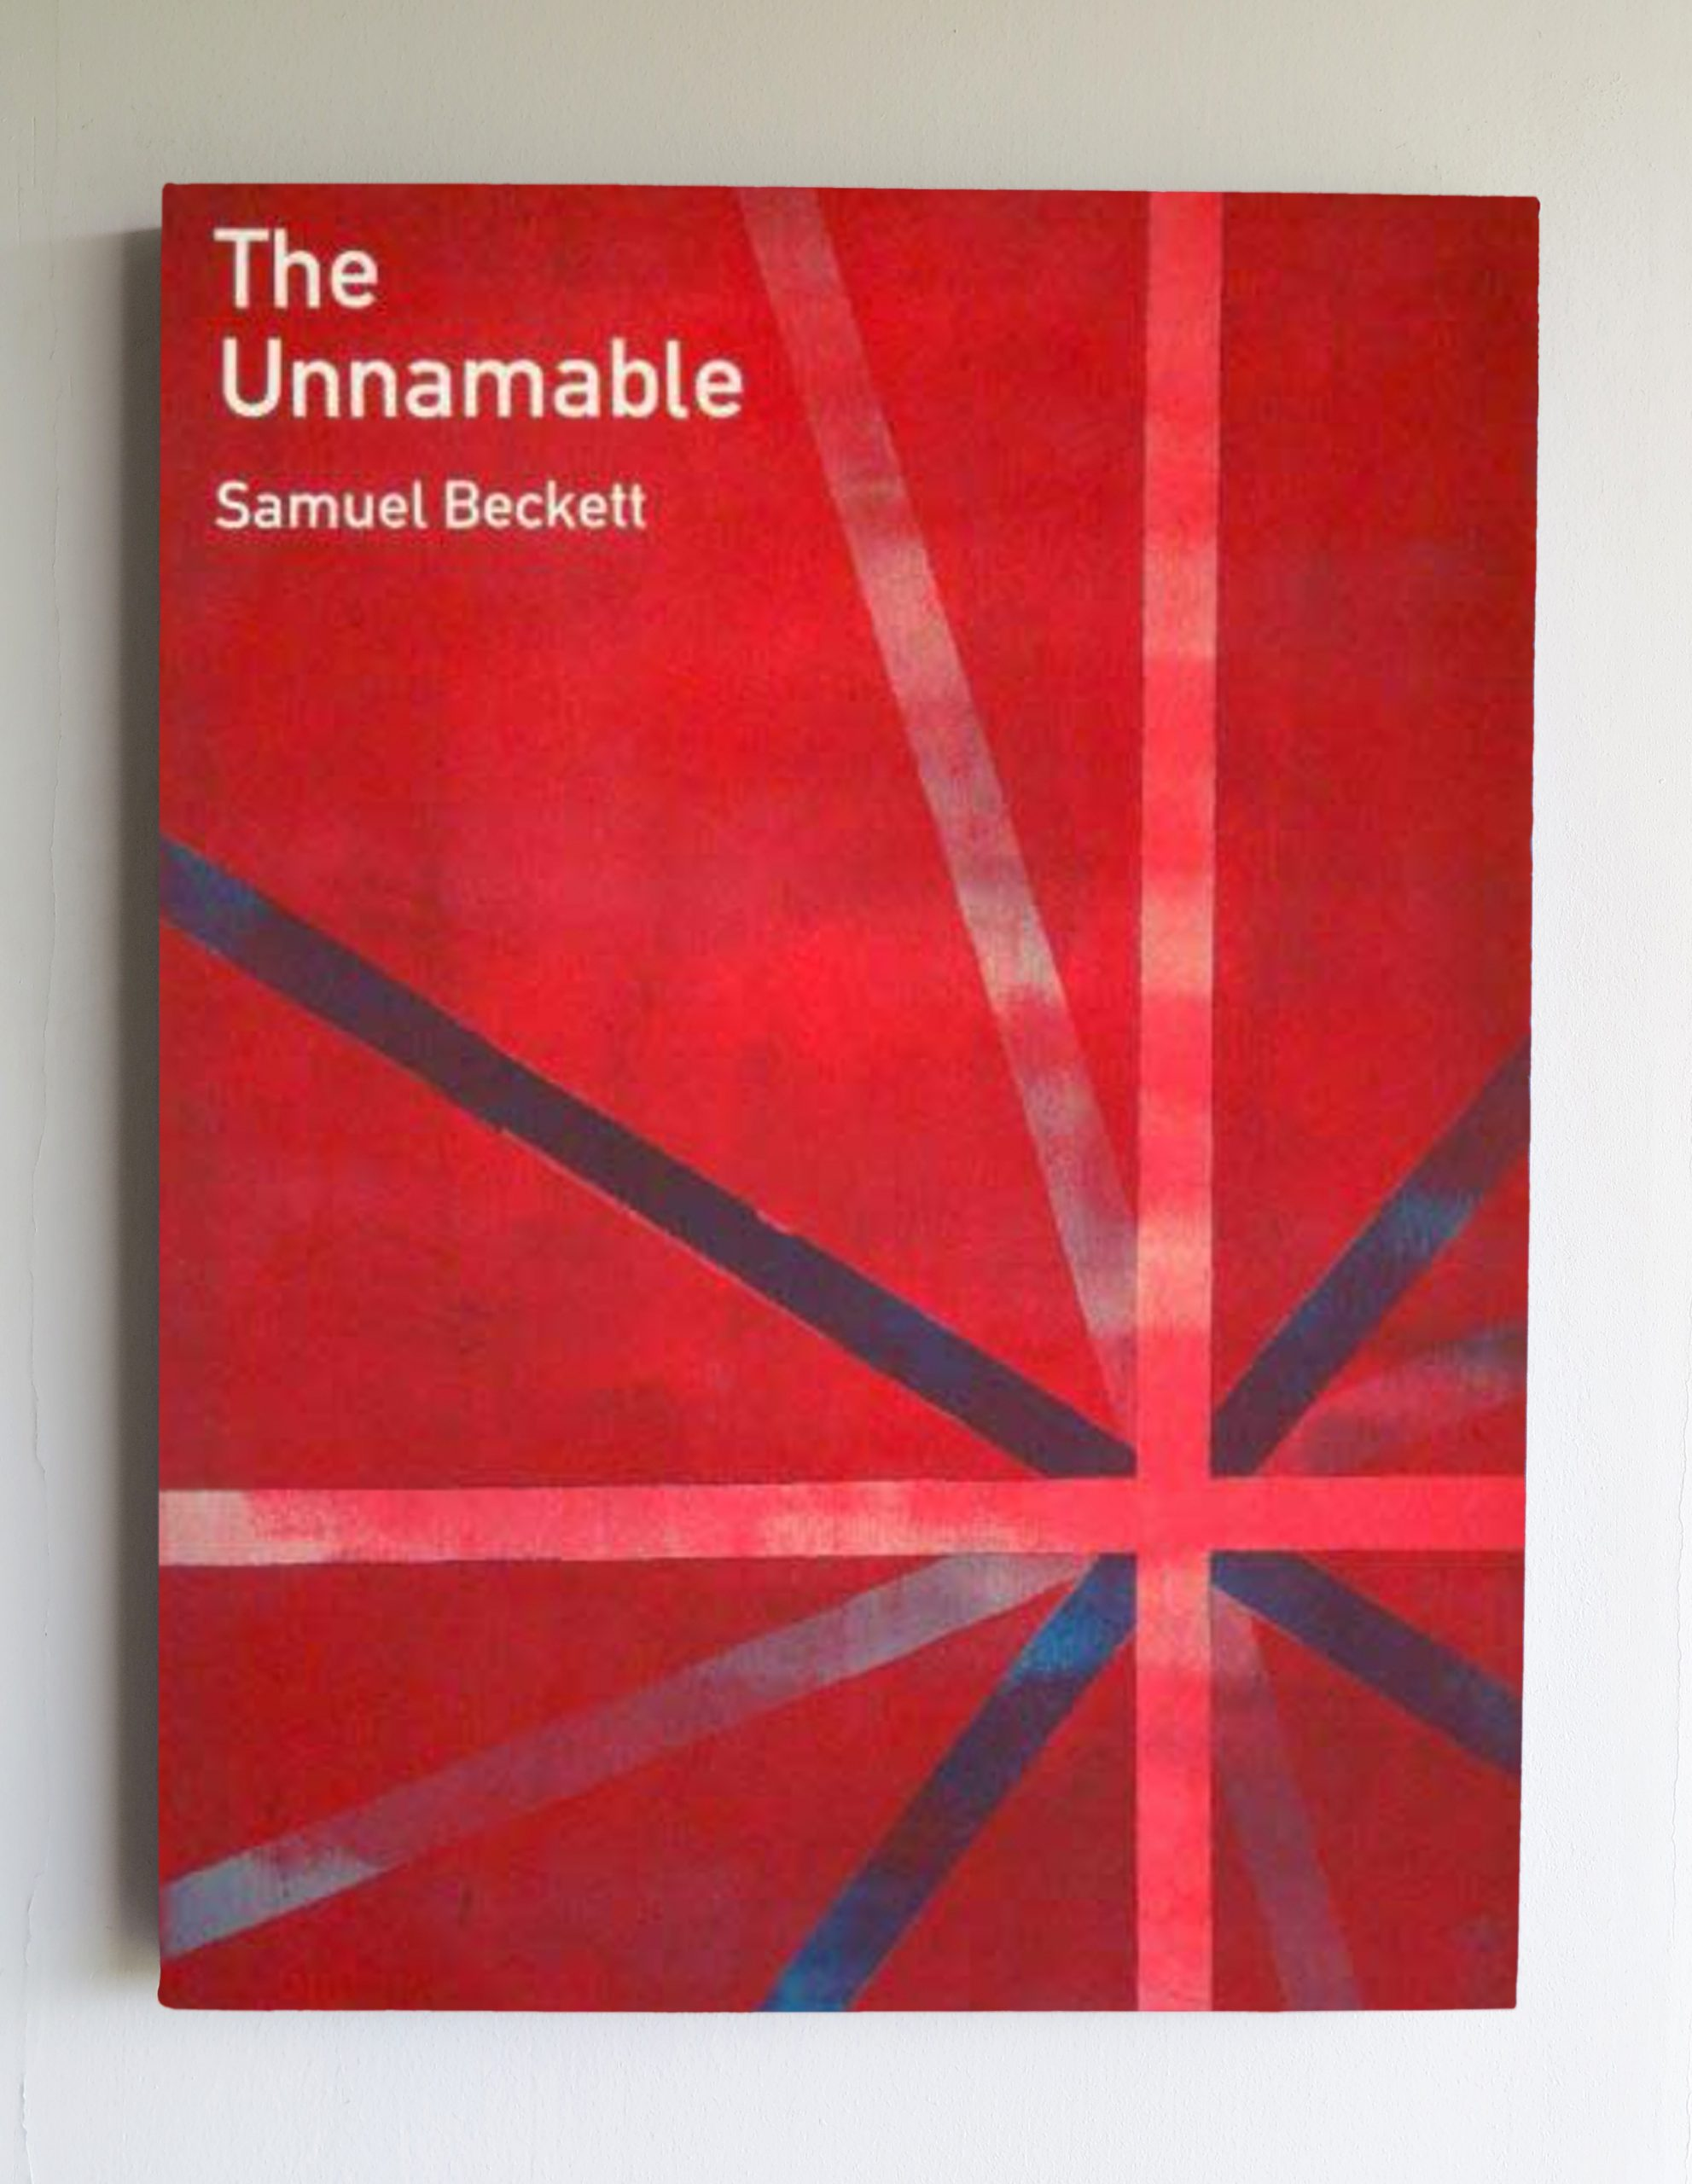 The Unnamable / Samuel Beckett (2)